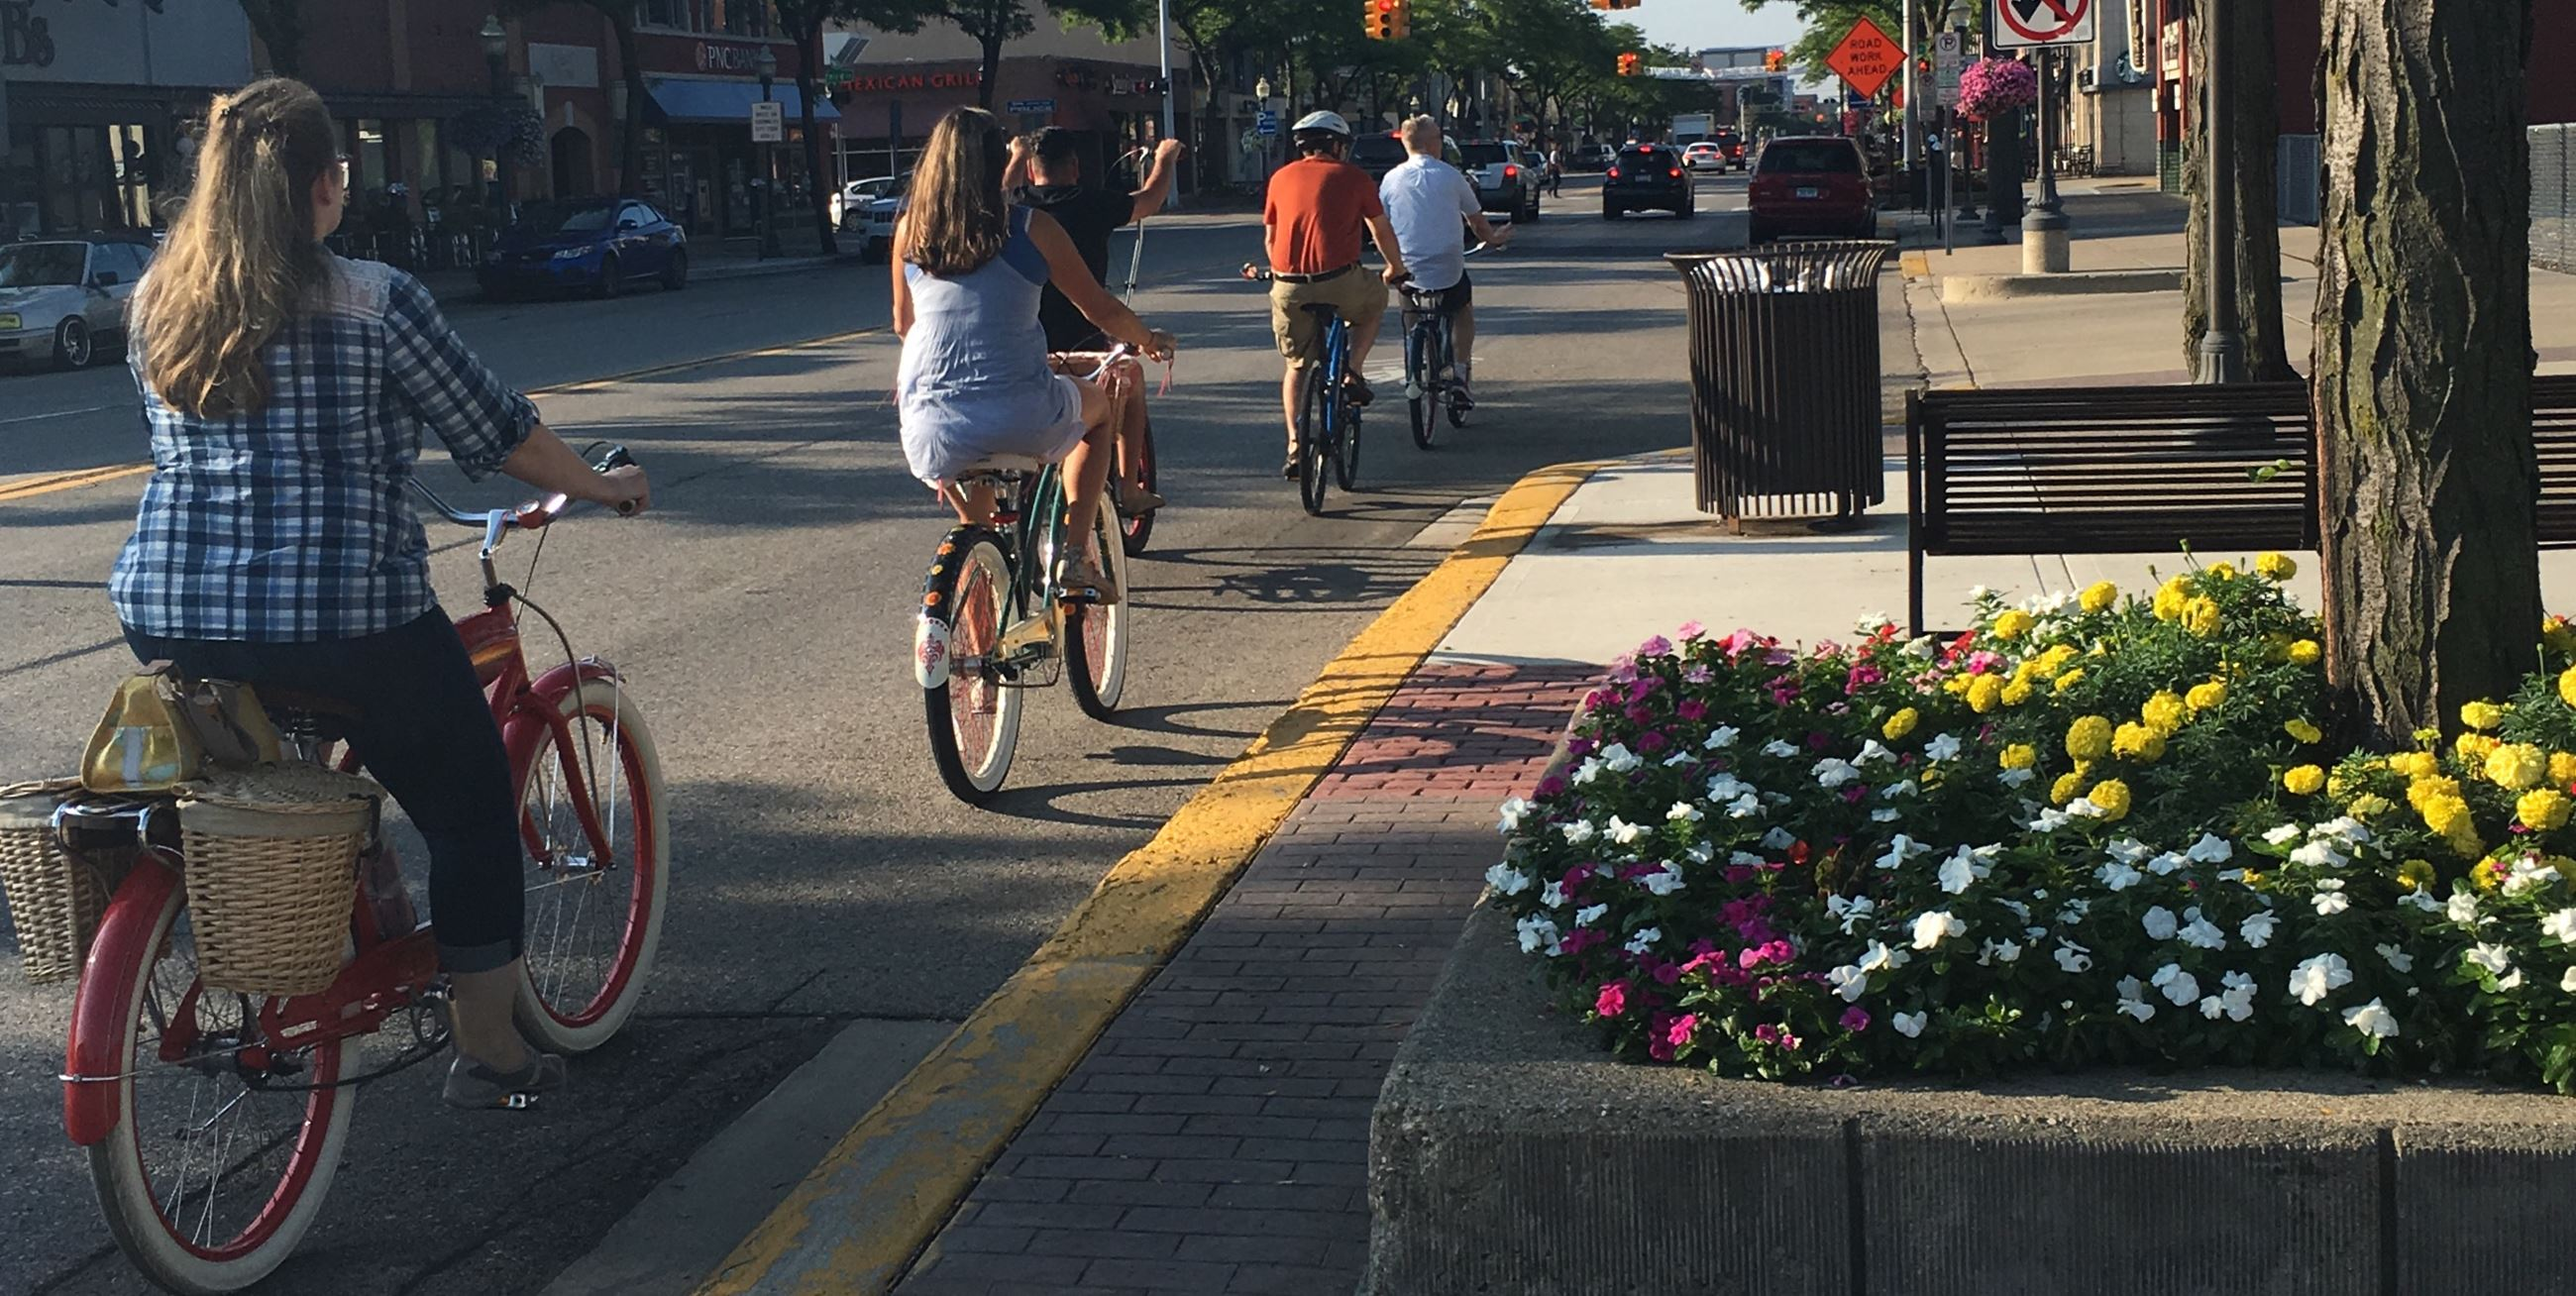 Biking in Royal Oak